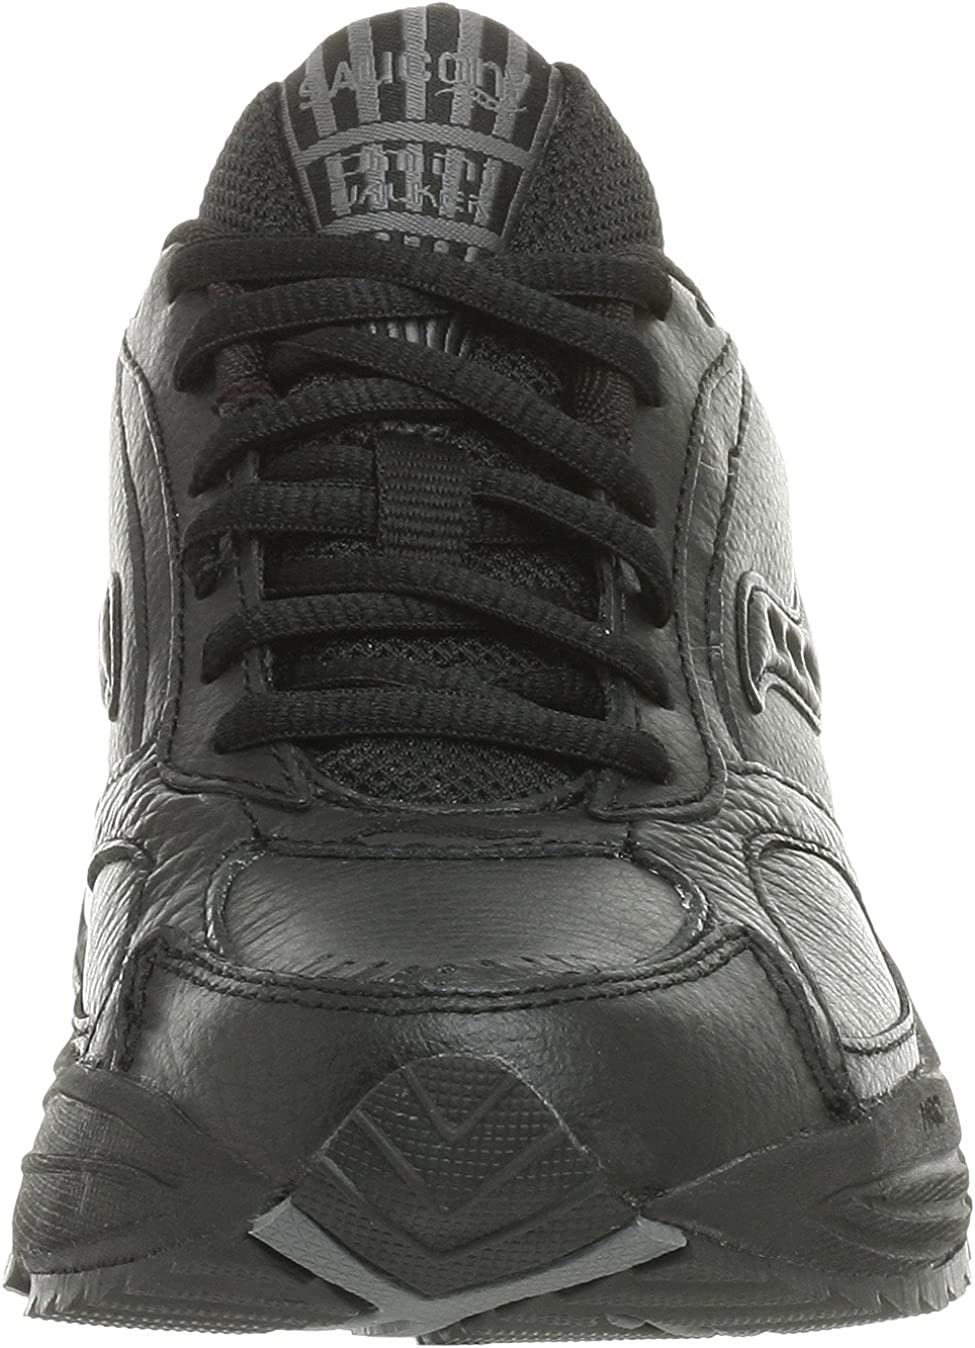 Saucony Women's Grid Omni Walker Walking Shoe,Black,10 N Black